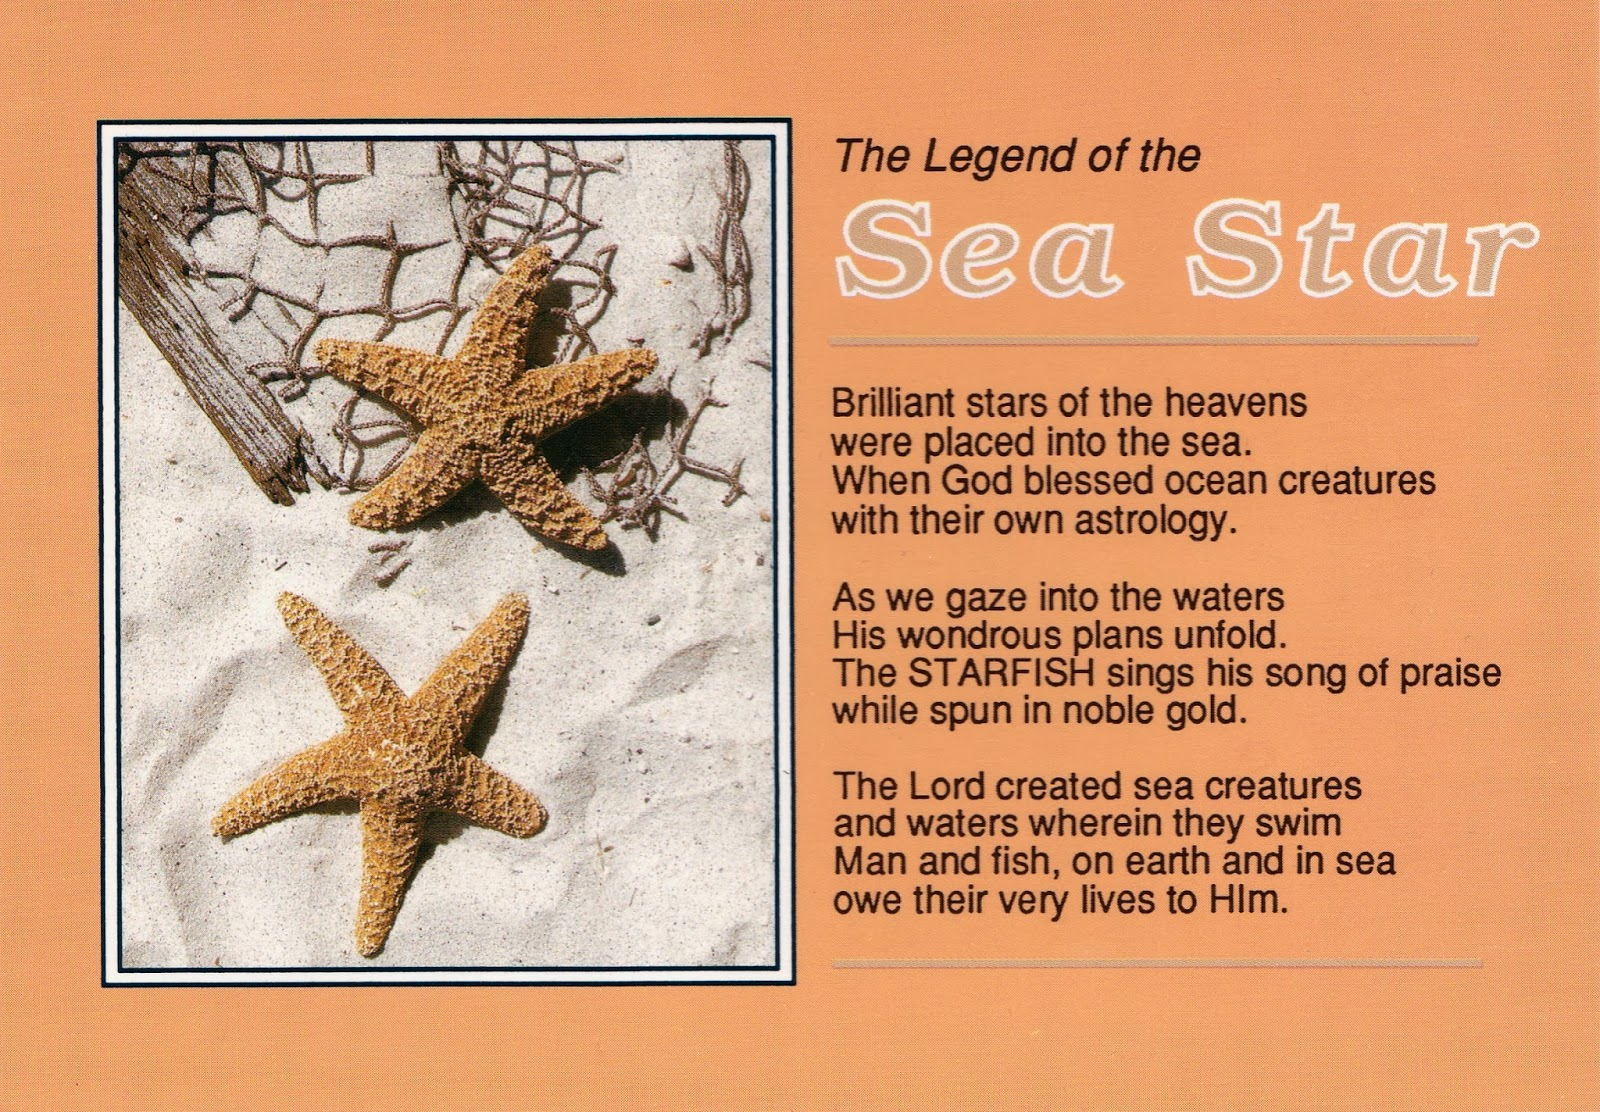 Starfish poem card - The Poem Of The Legend Of The Sea Star